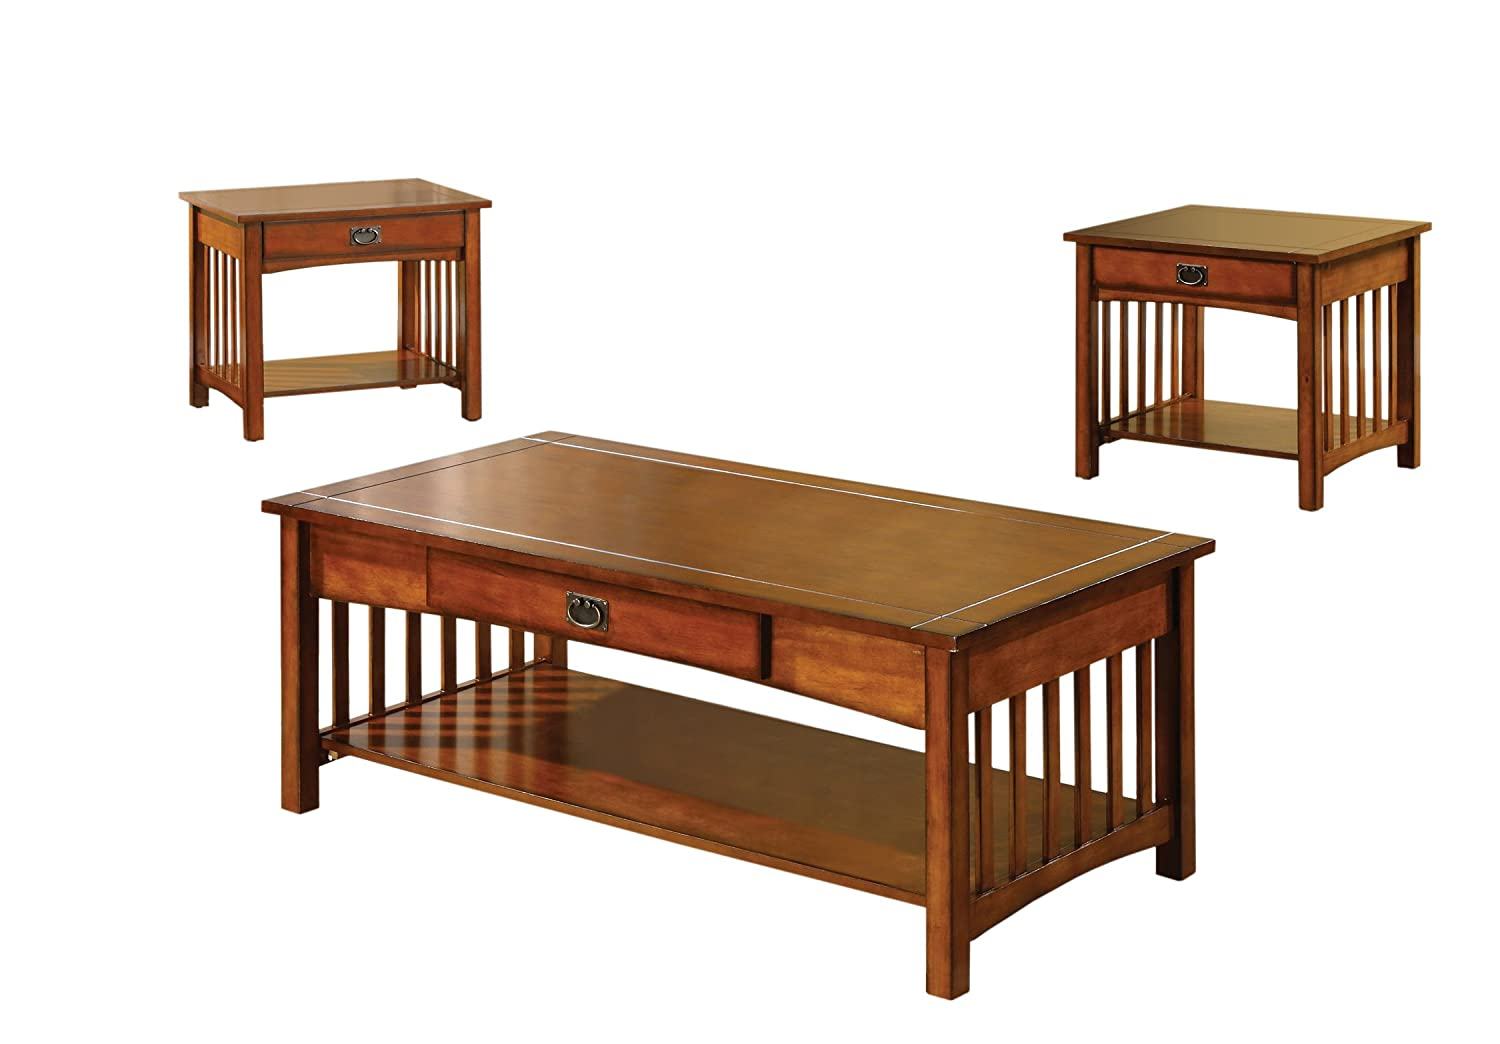 Amazon.com: Furniture Of America Francia 3 Piece Mission Style Table Set,  Antique Oak Finish: Kitchen U0026 Dining